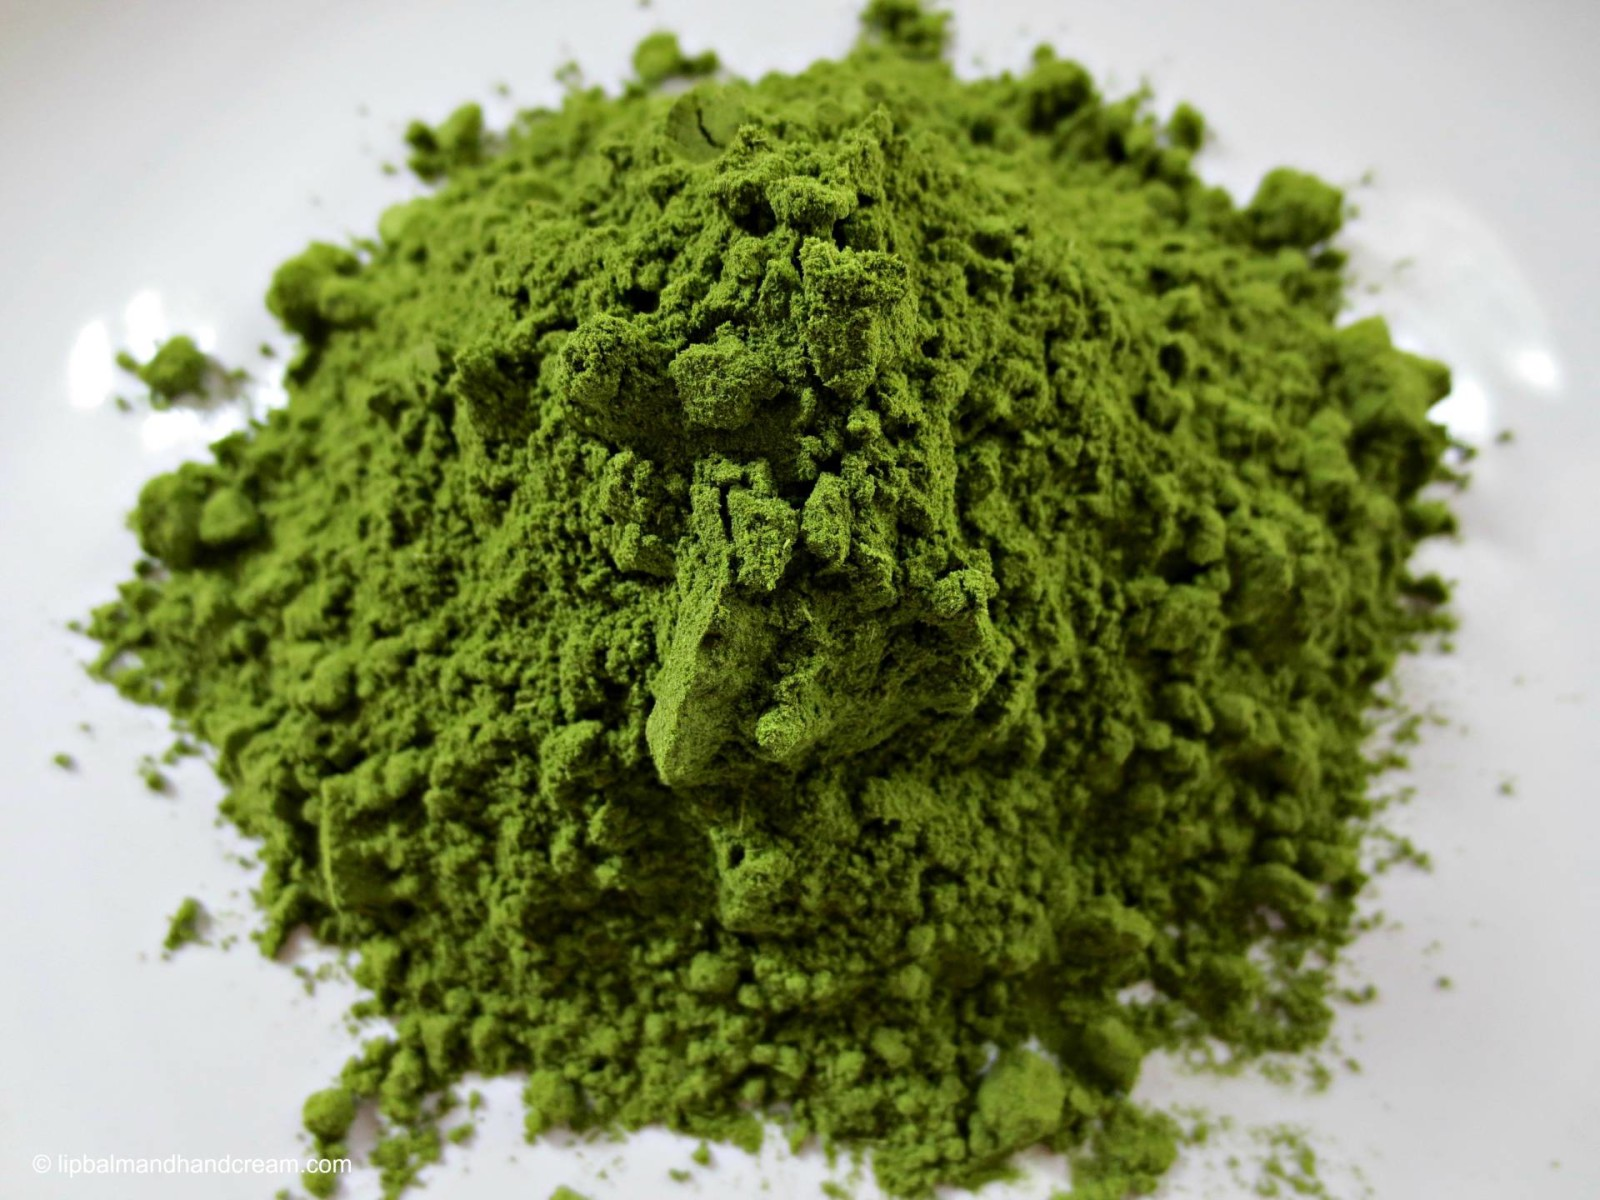 Moringa superleaf powder from Aduna – super-greens for healthy hair, skin and nails (and general health too)